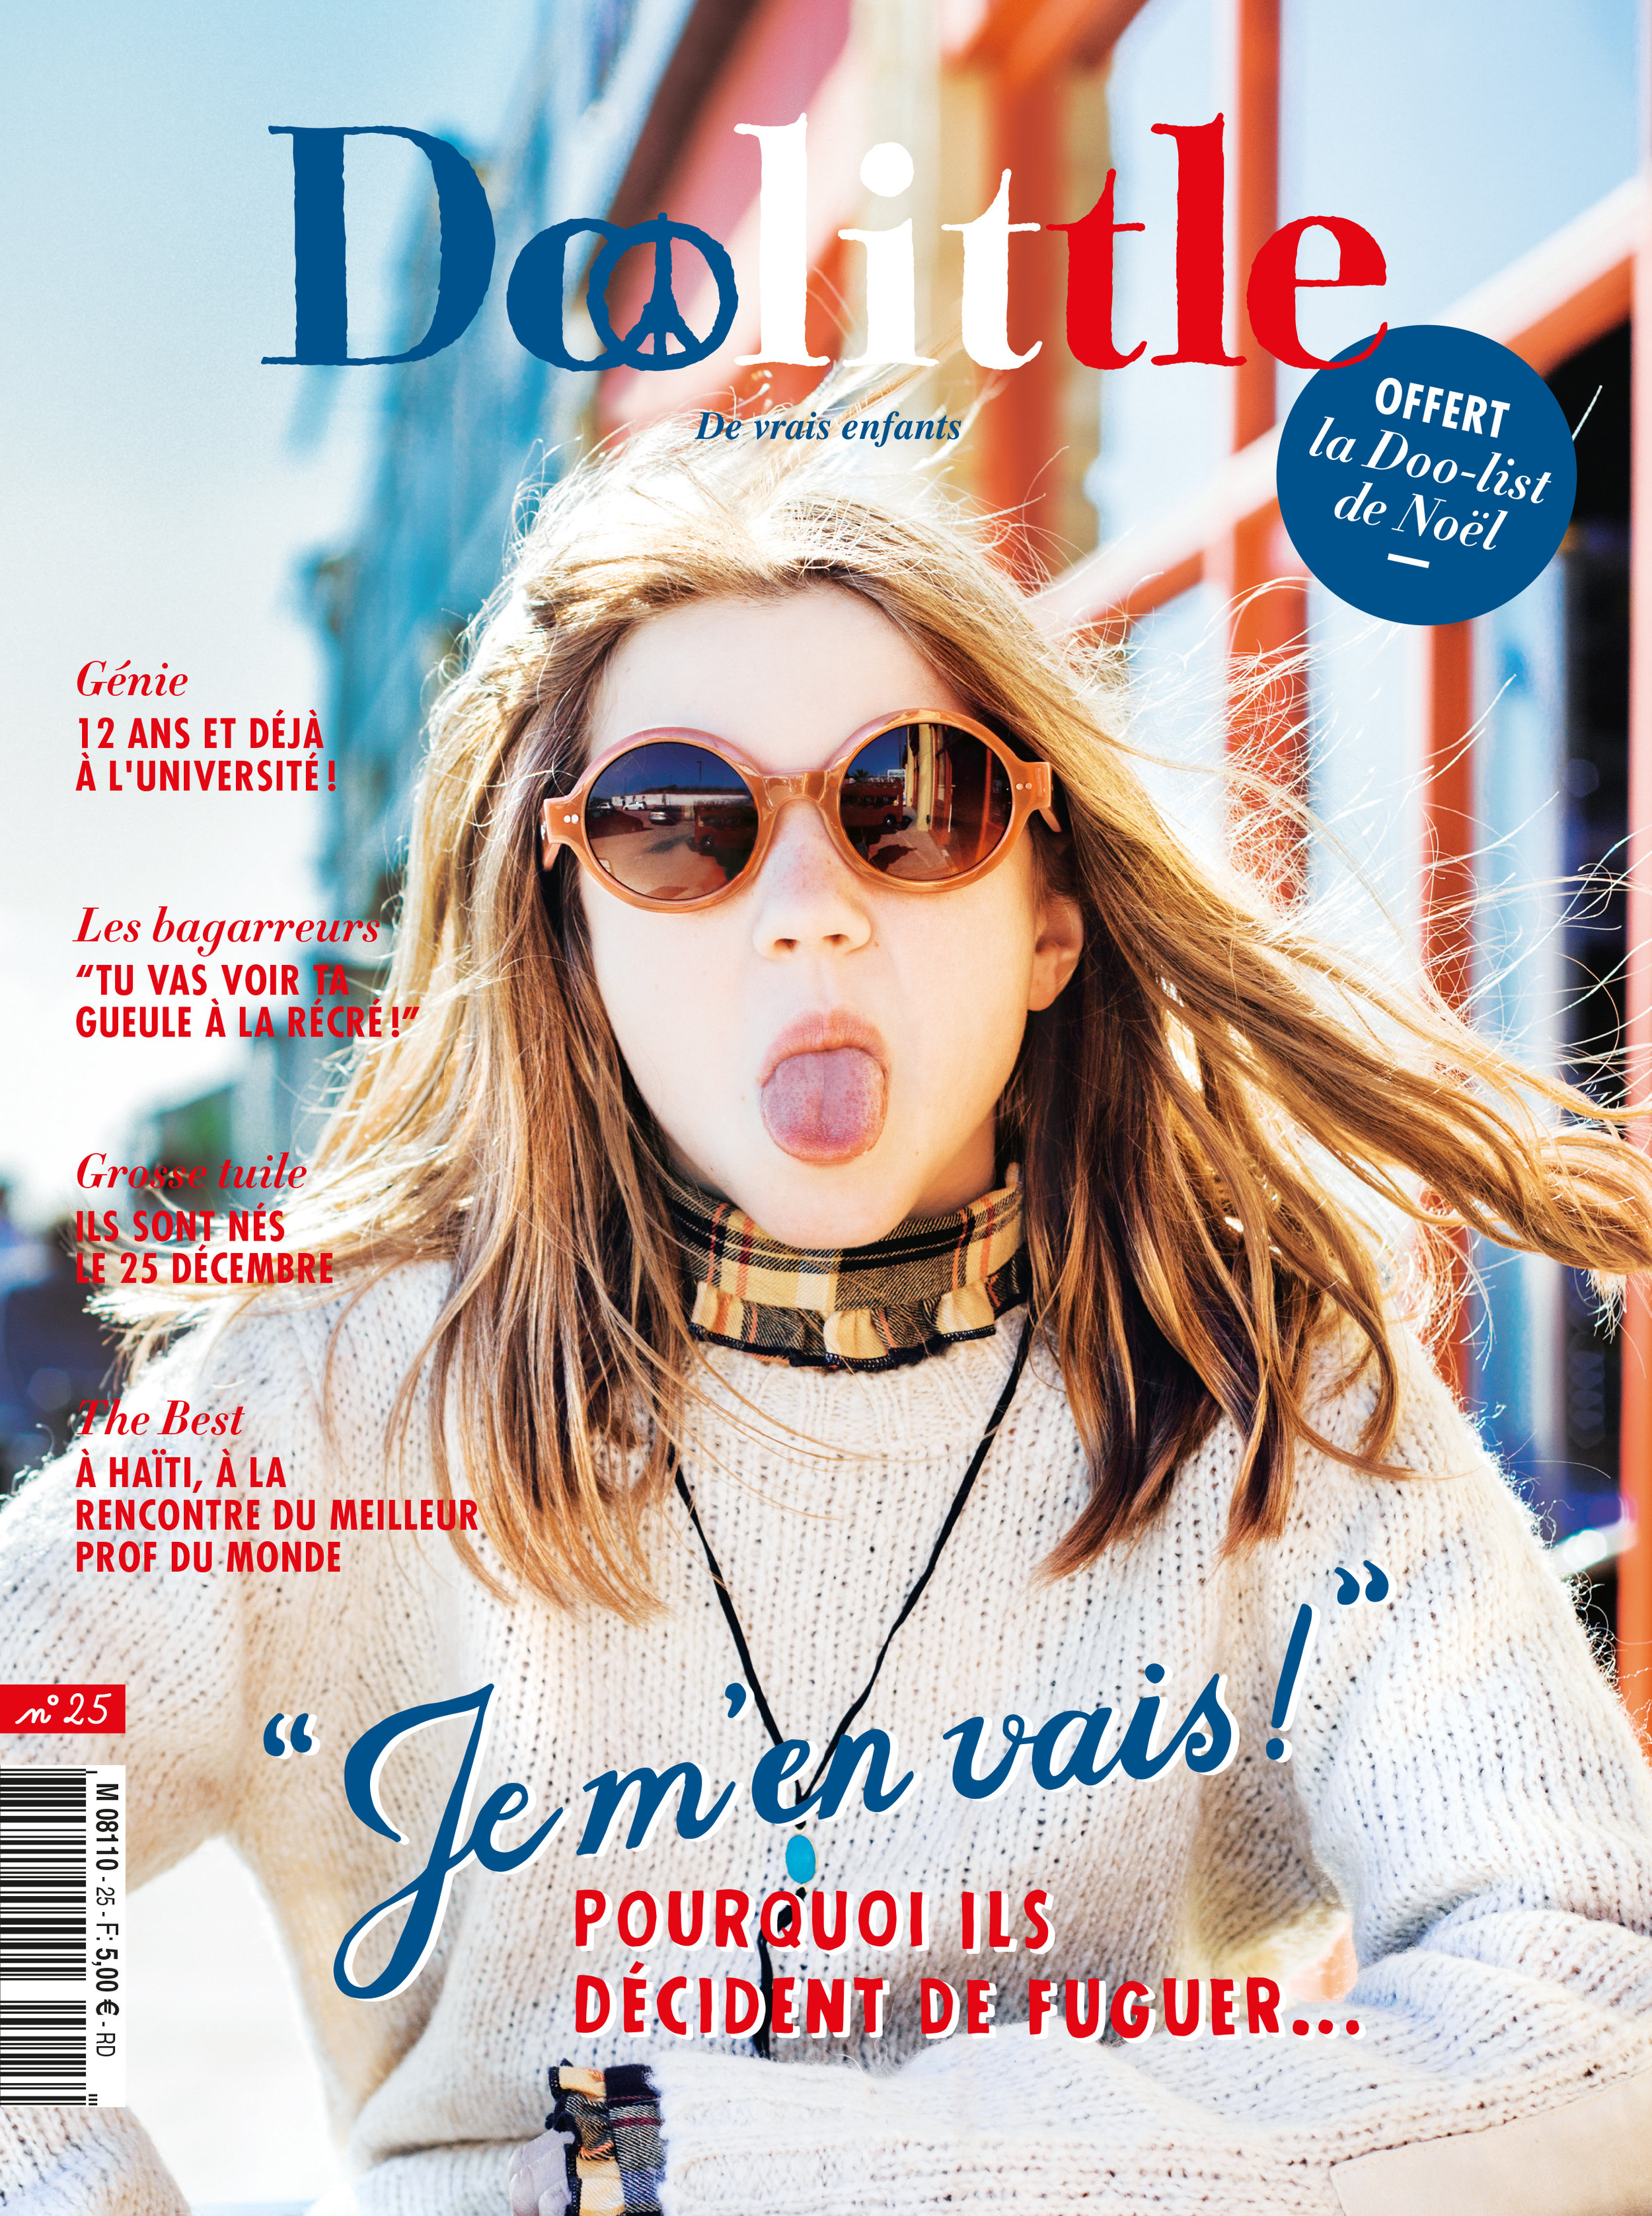 Doolittle Magazine, December 2015 cover